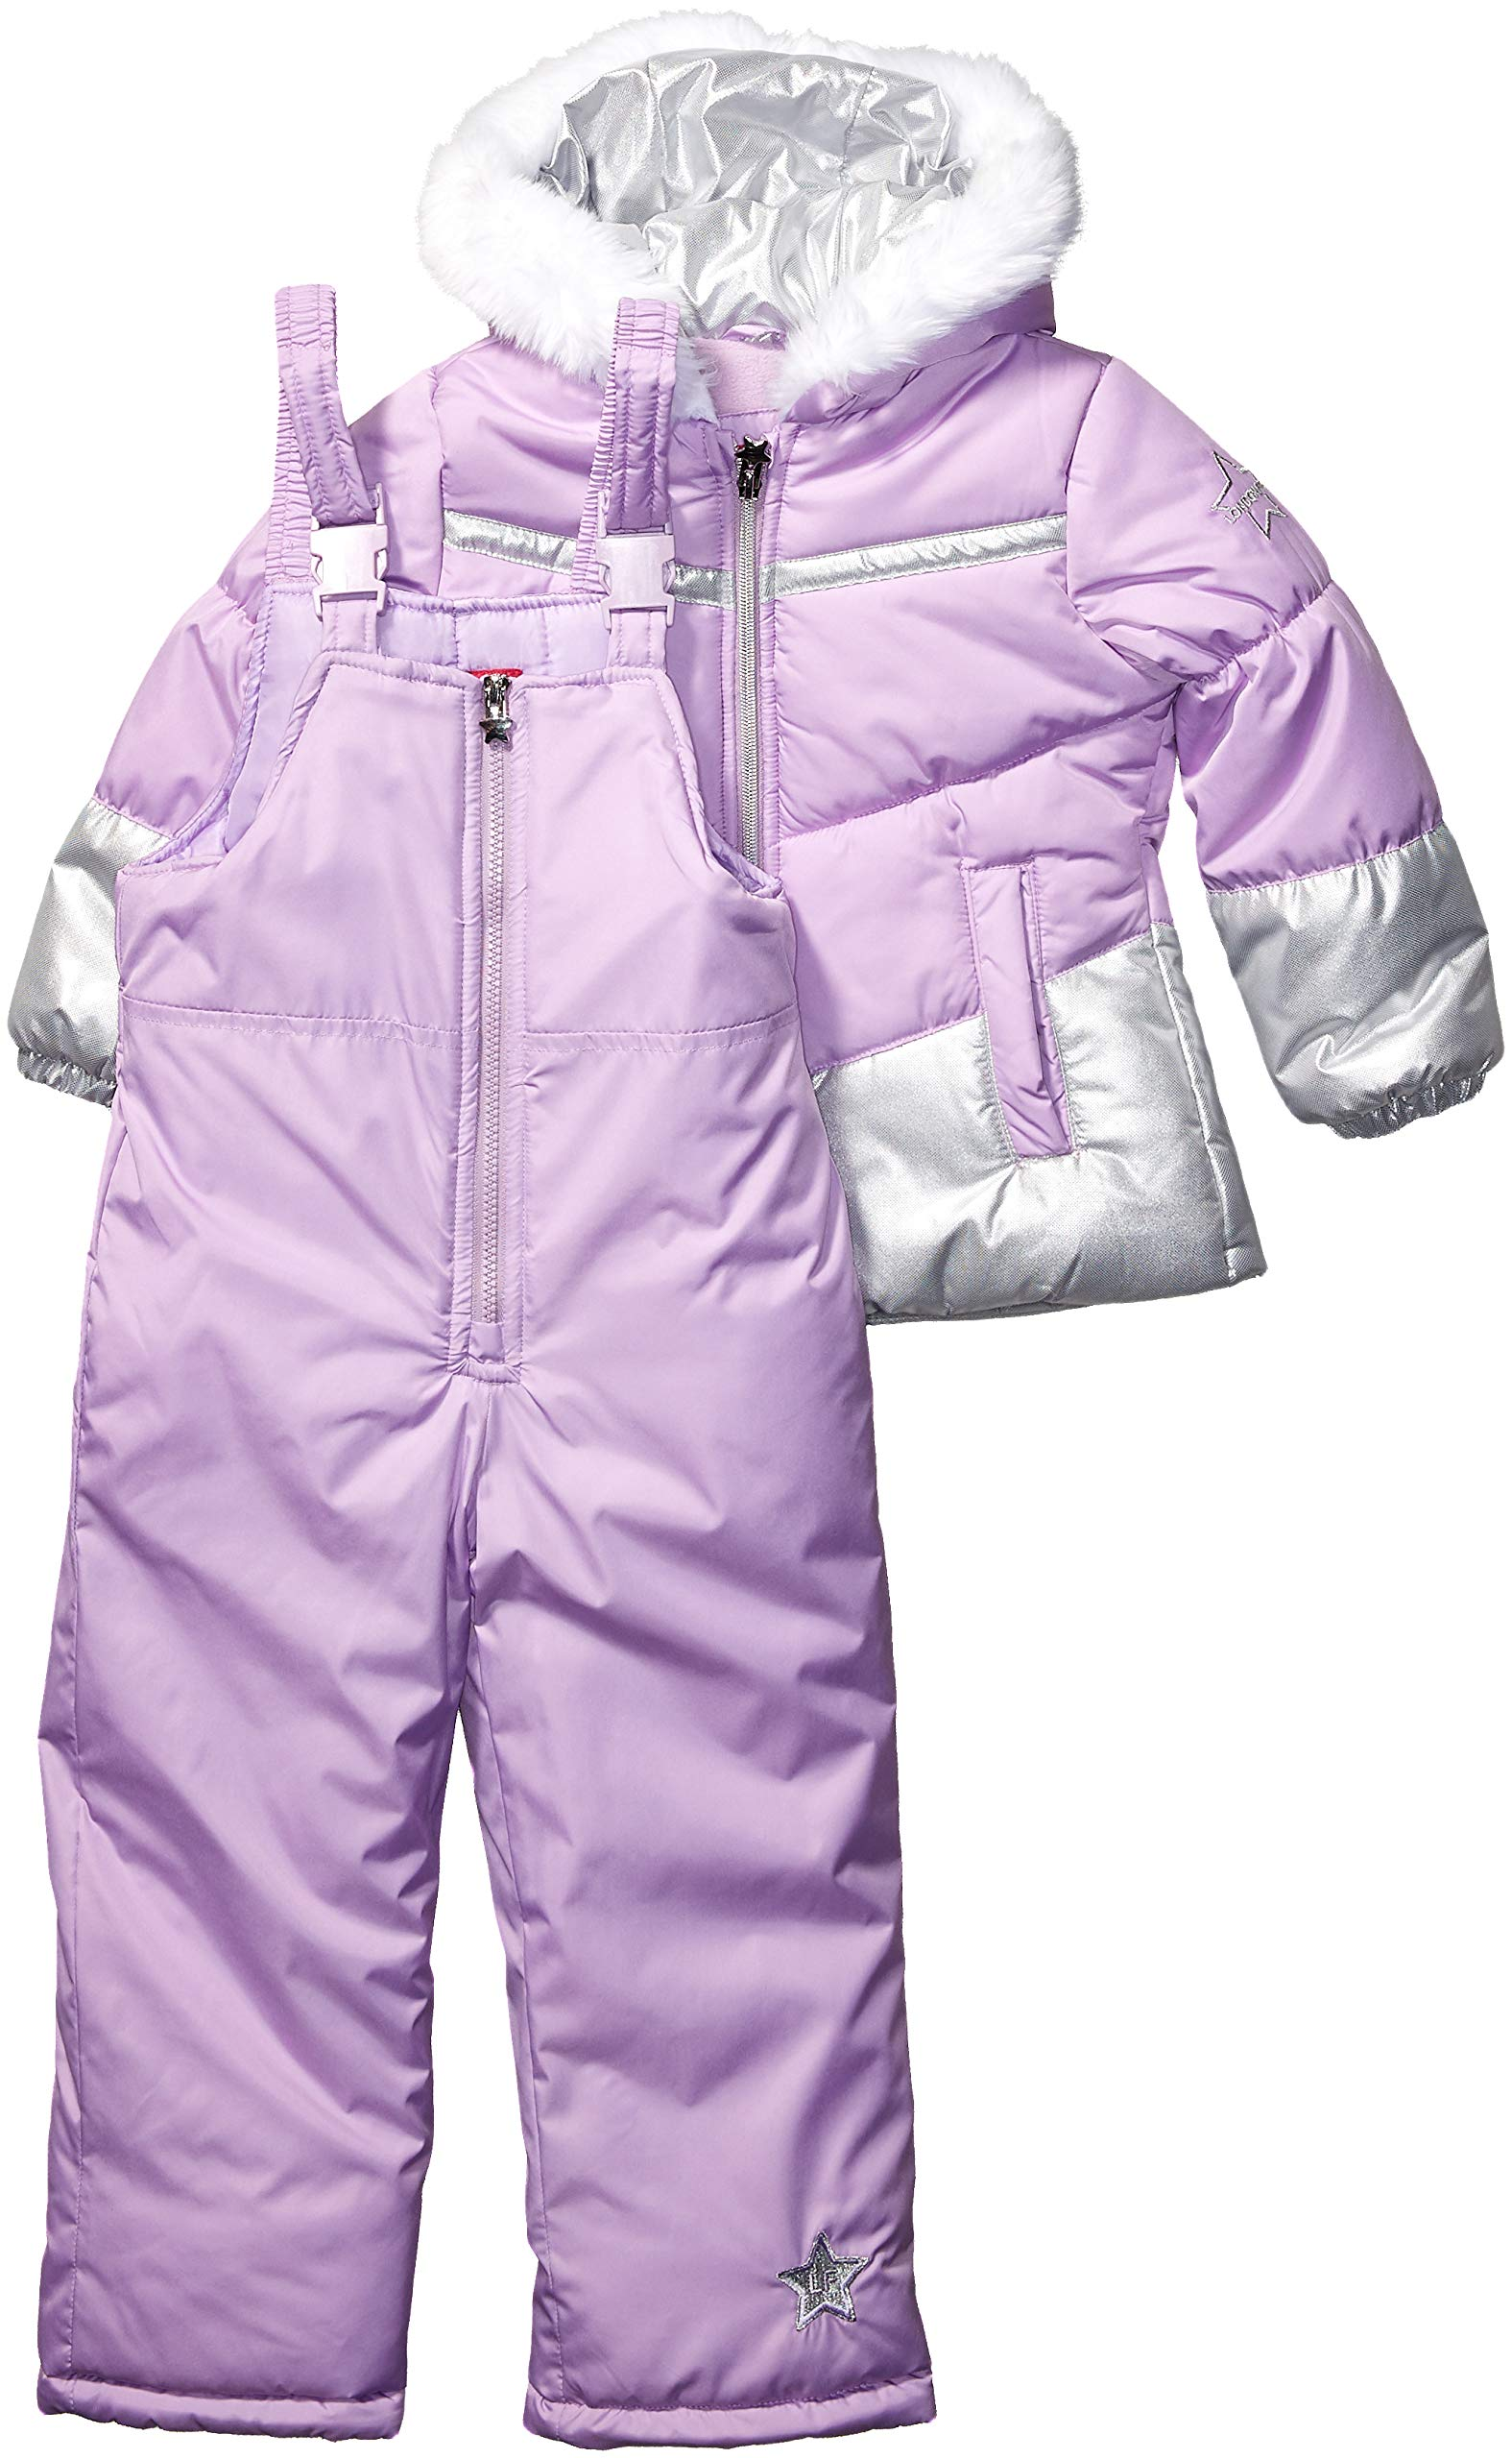 London Fog Girls' Toddler Snowsuit with Snowbib and Puffer Jacket, Violet Silver Foil, 4T by London Fog